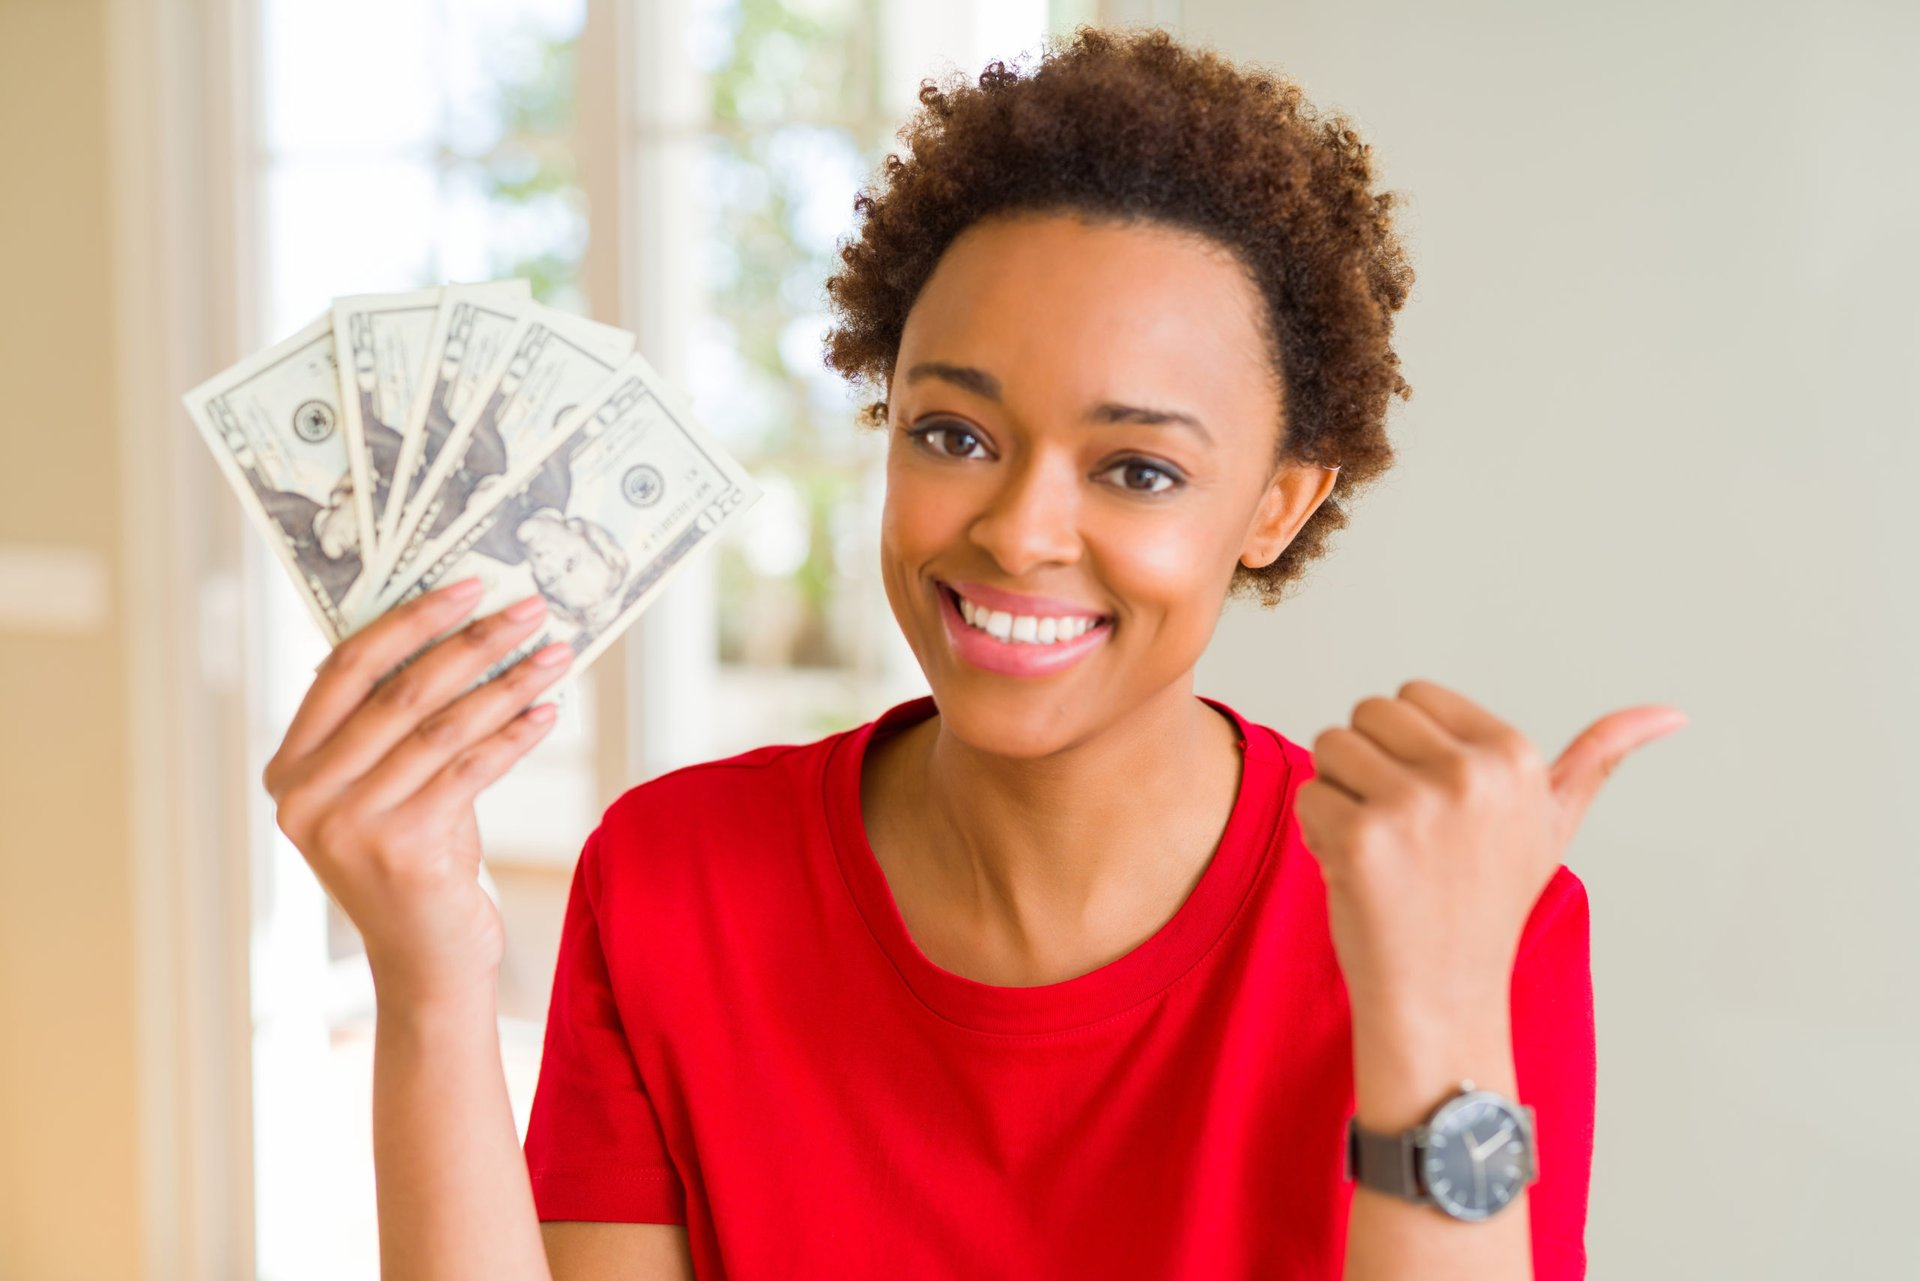 A young woman smiles while holding a fan of cash and giving the thumbs-up gesture